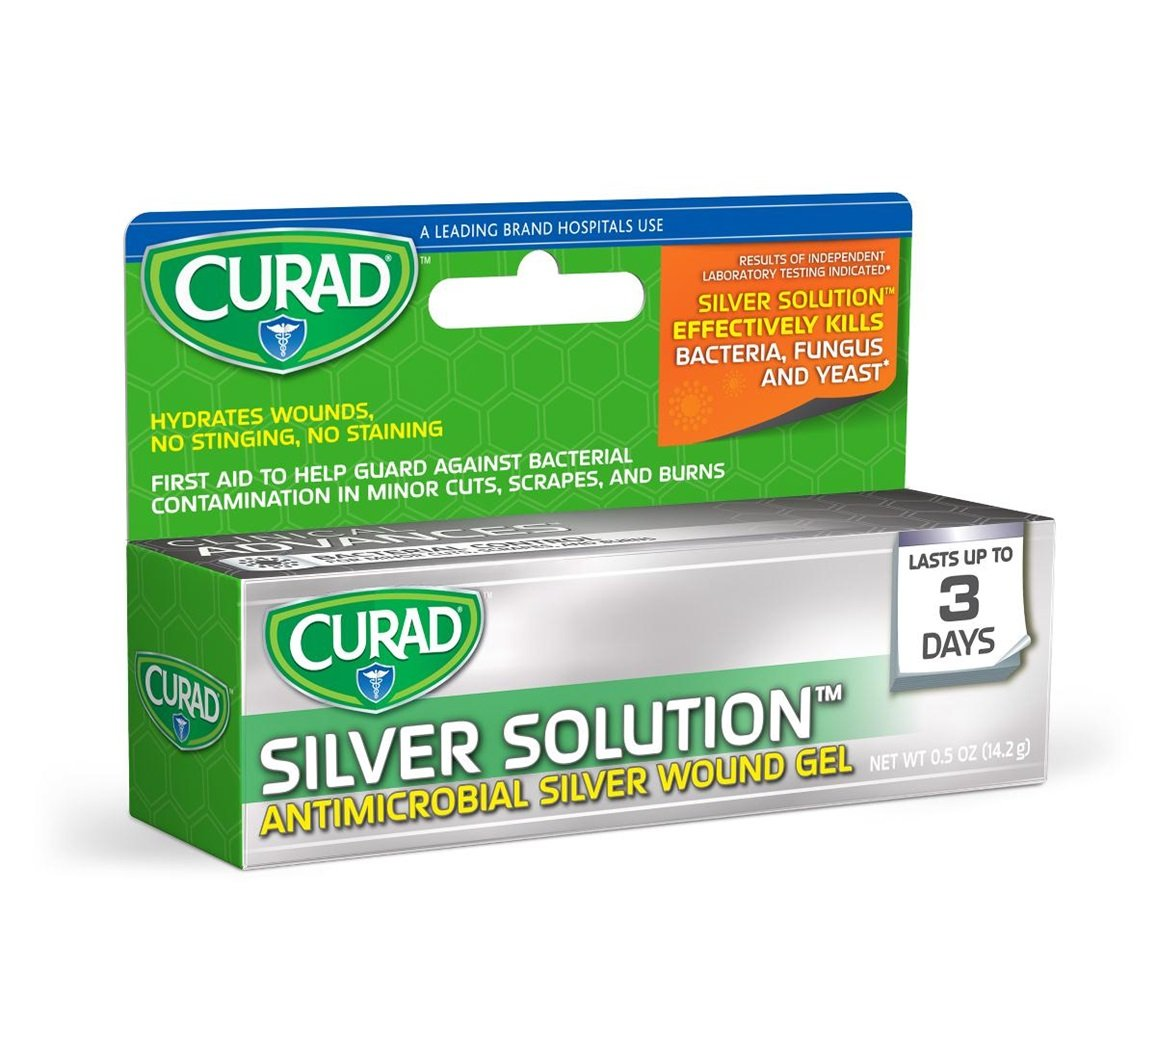 Curad Silver Solution Antimicrobial Silver Wound Gel, 0.5 oz Per Tube (12 Pack) by Curad